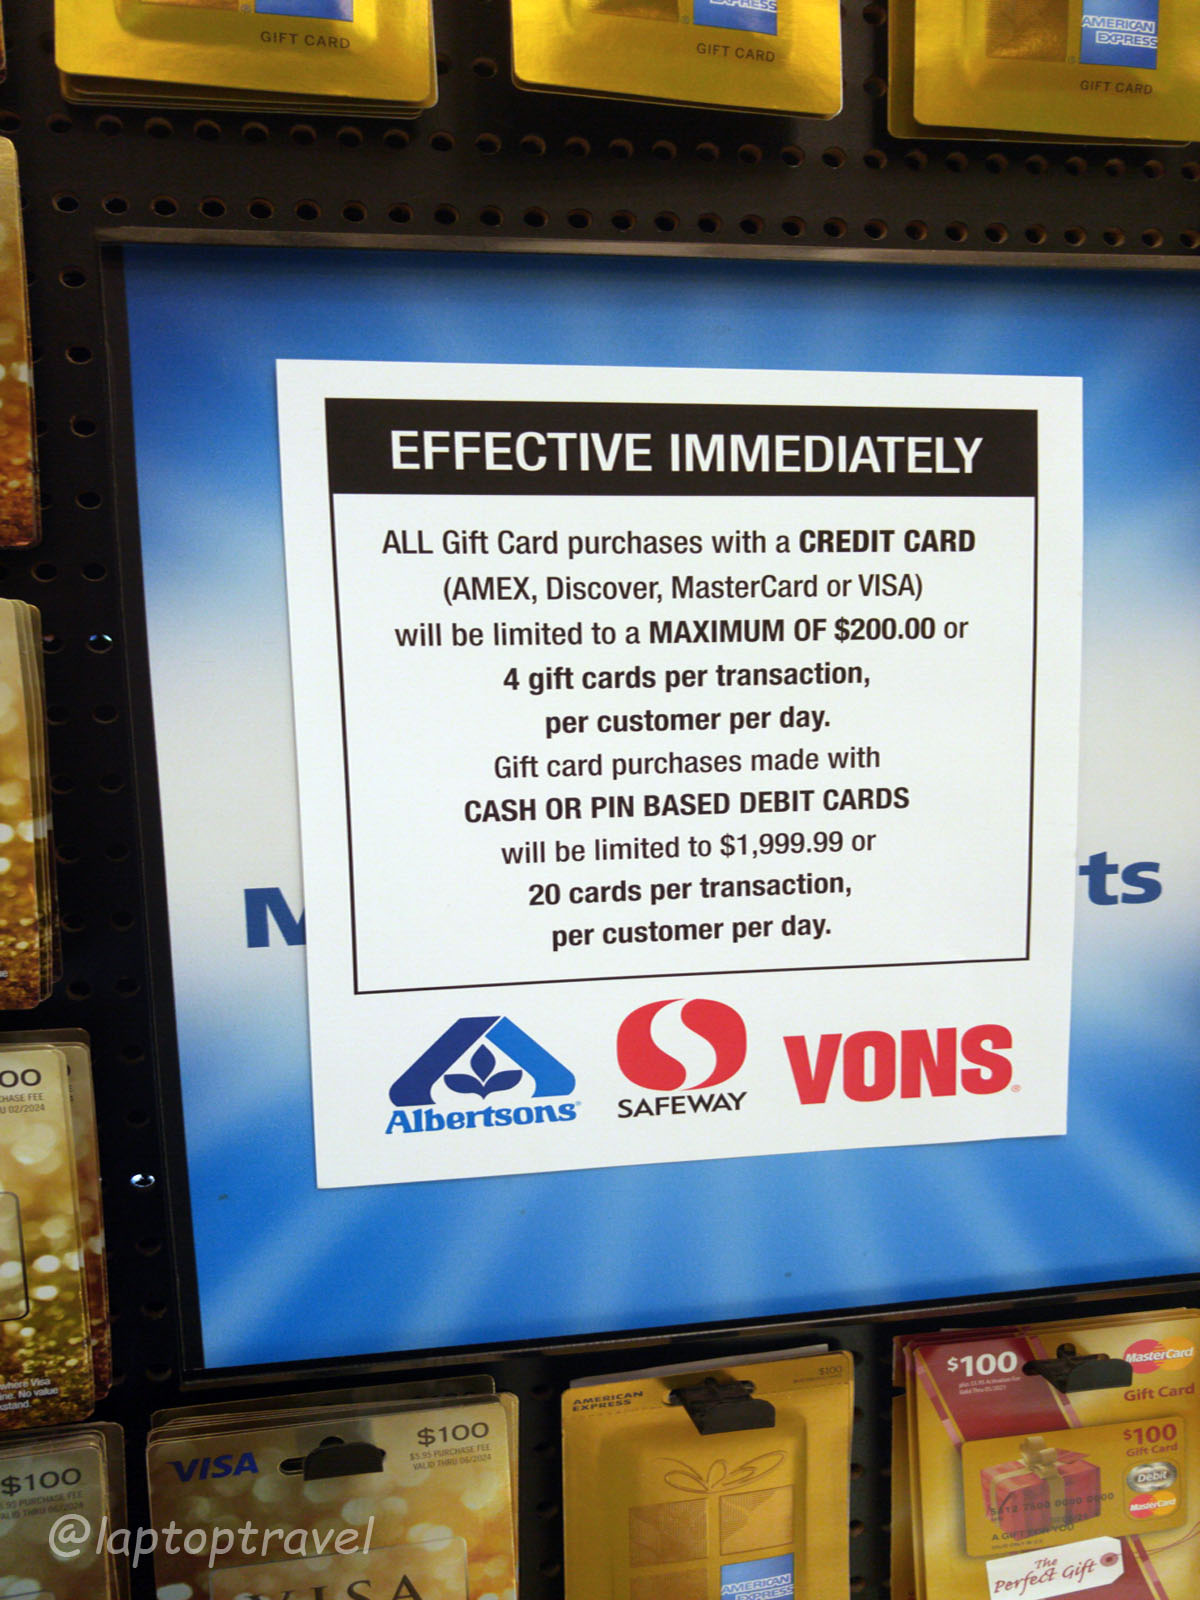 Albertson's, Safeway & Vons Clamp Down on Purchases of Gift Cards ...